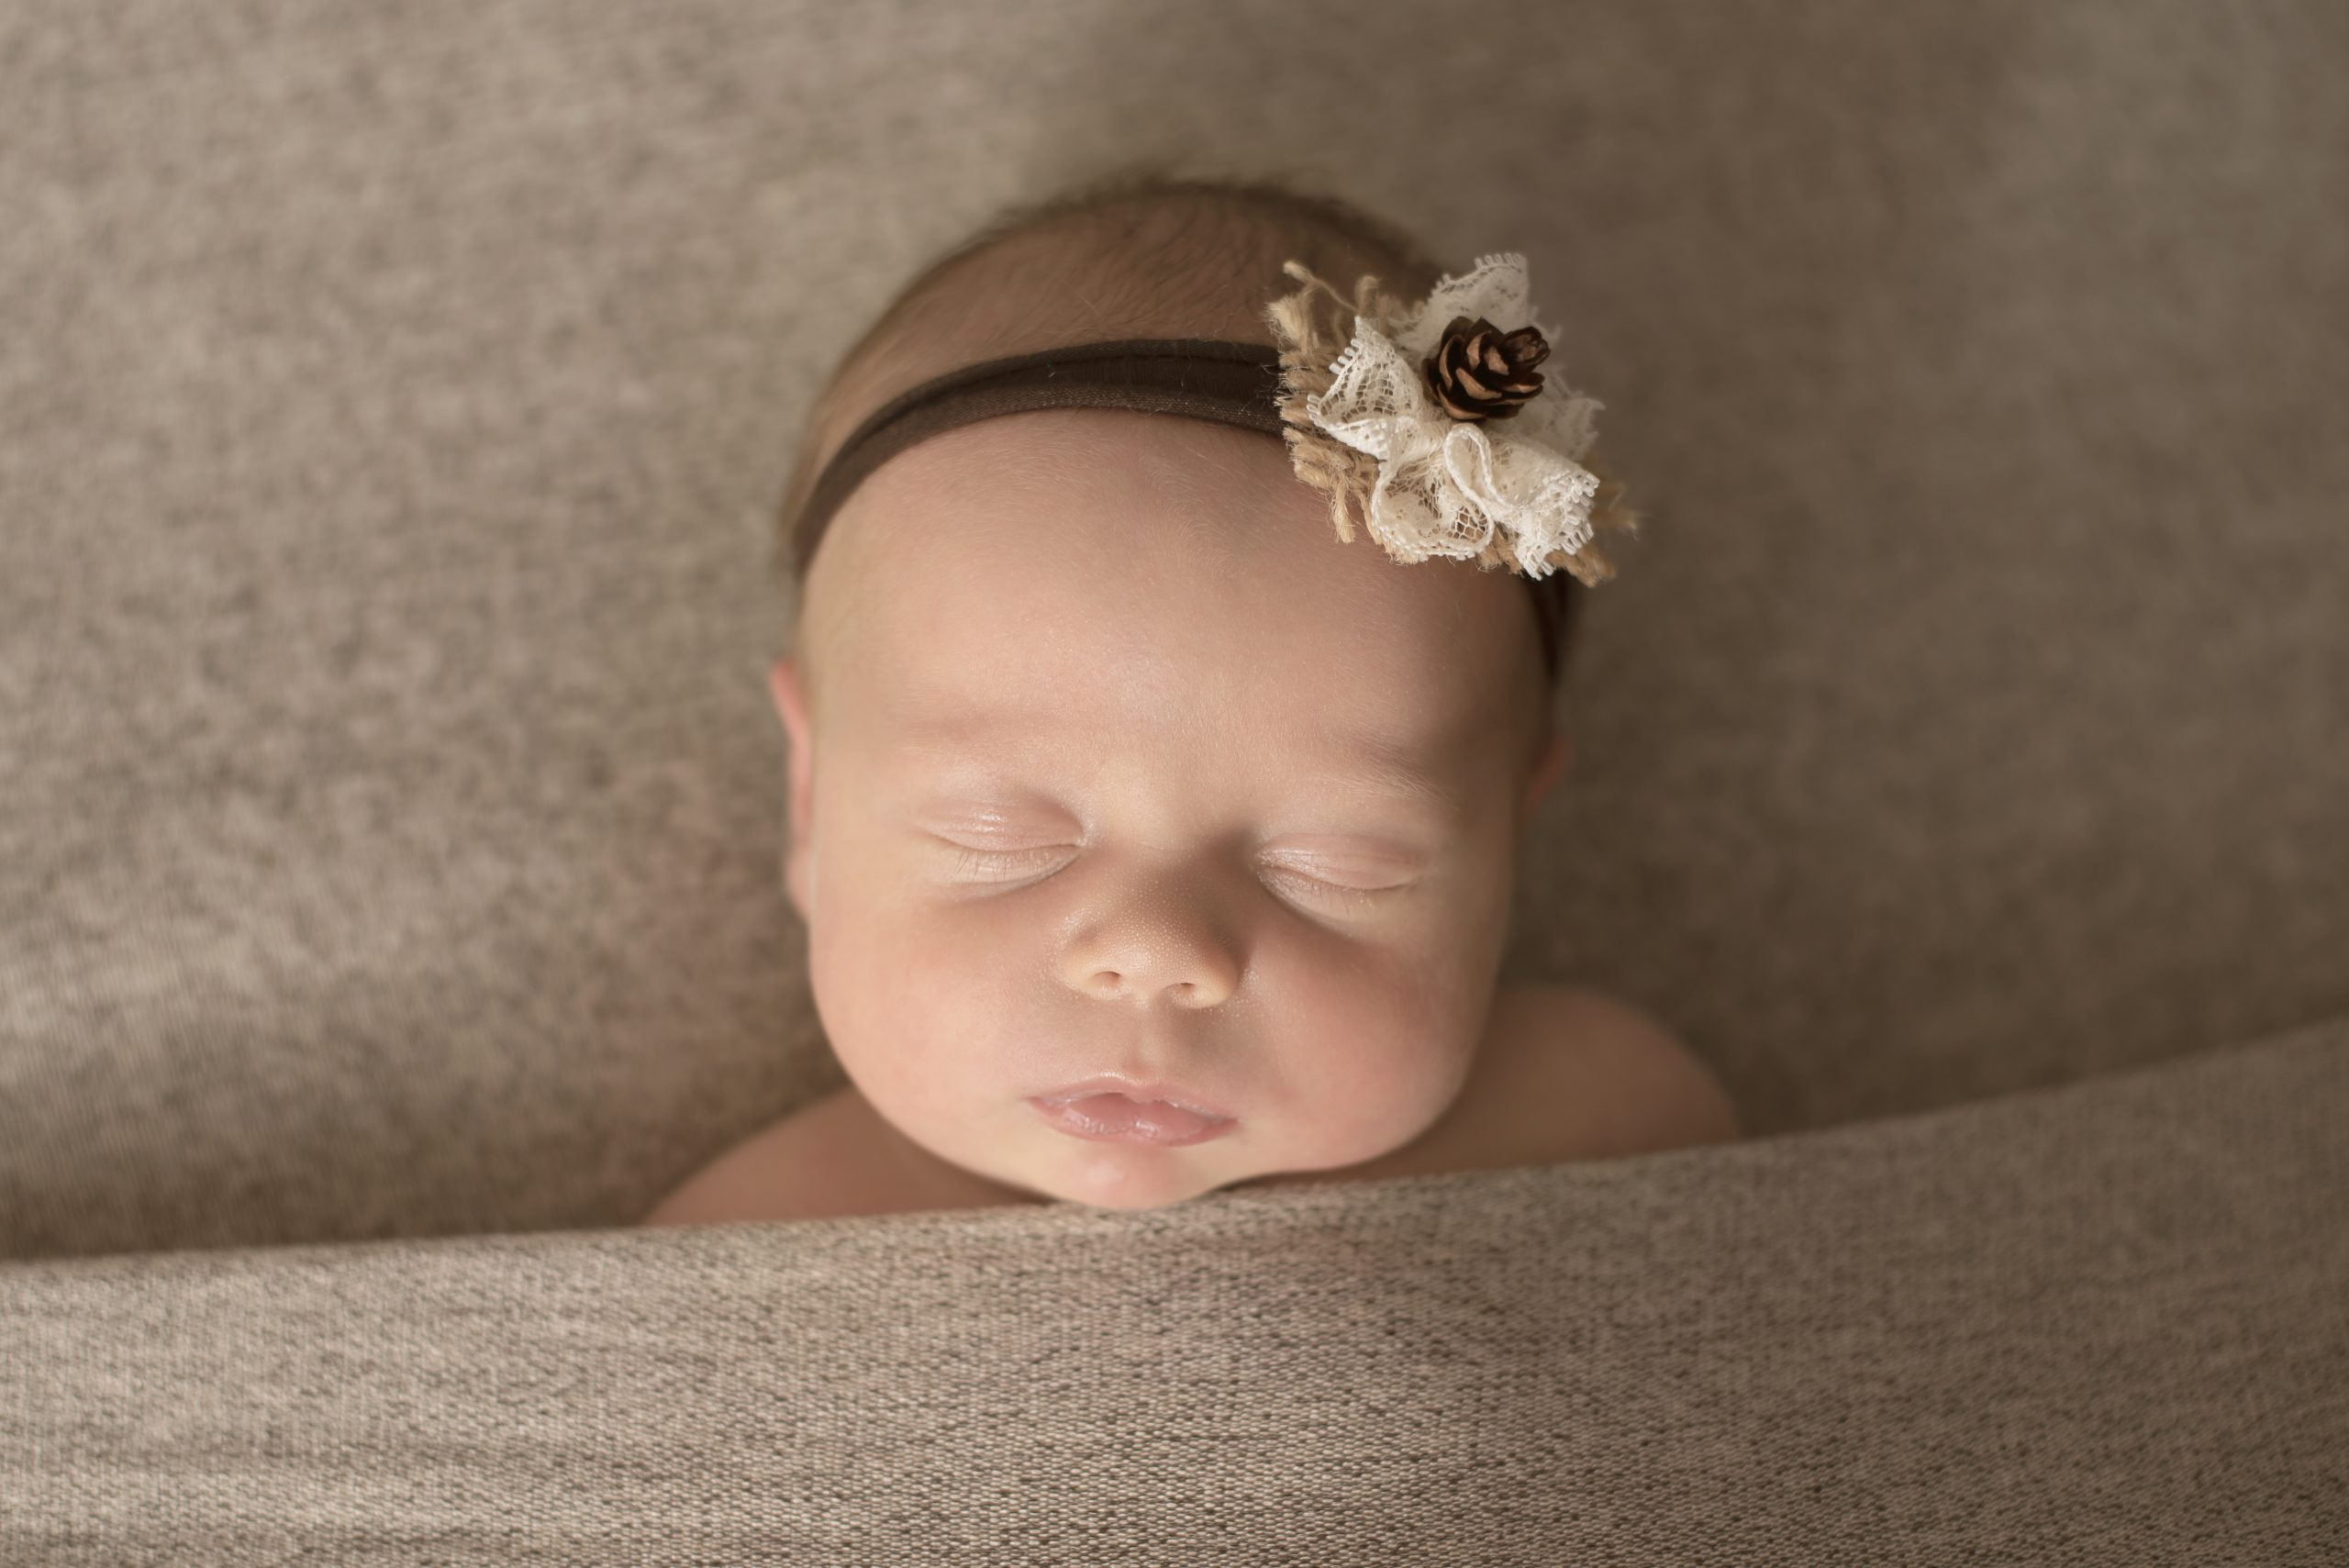 Hannah tucked in pose CNY Newborn Photography